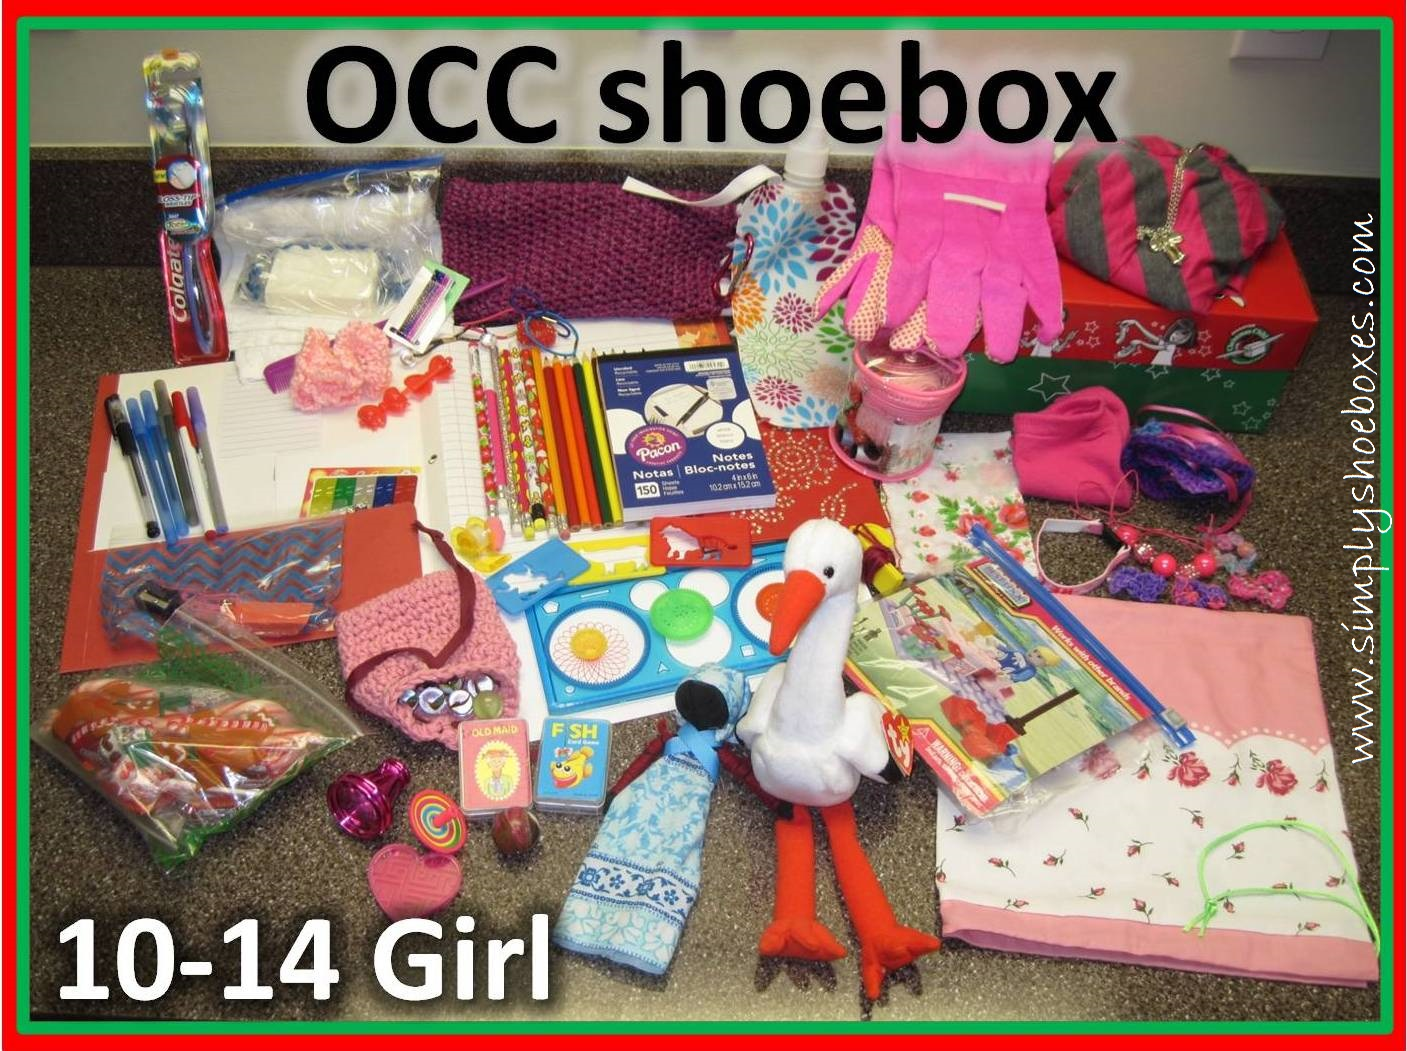 Operation christmas child gift ideas 10-14 girls